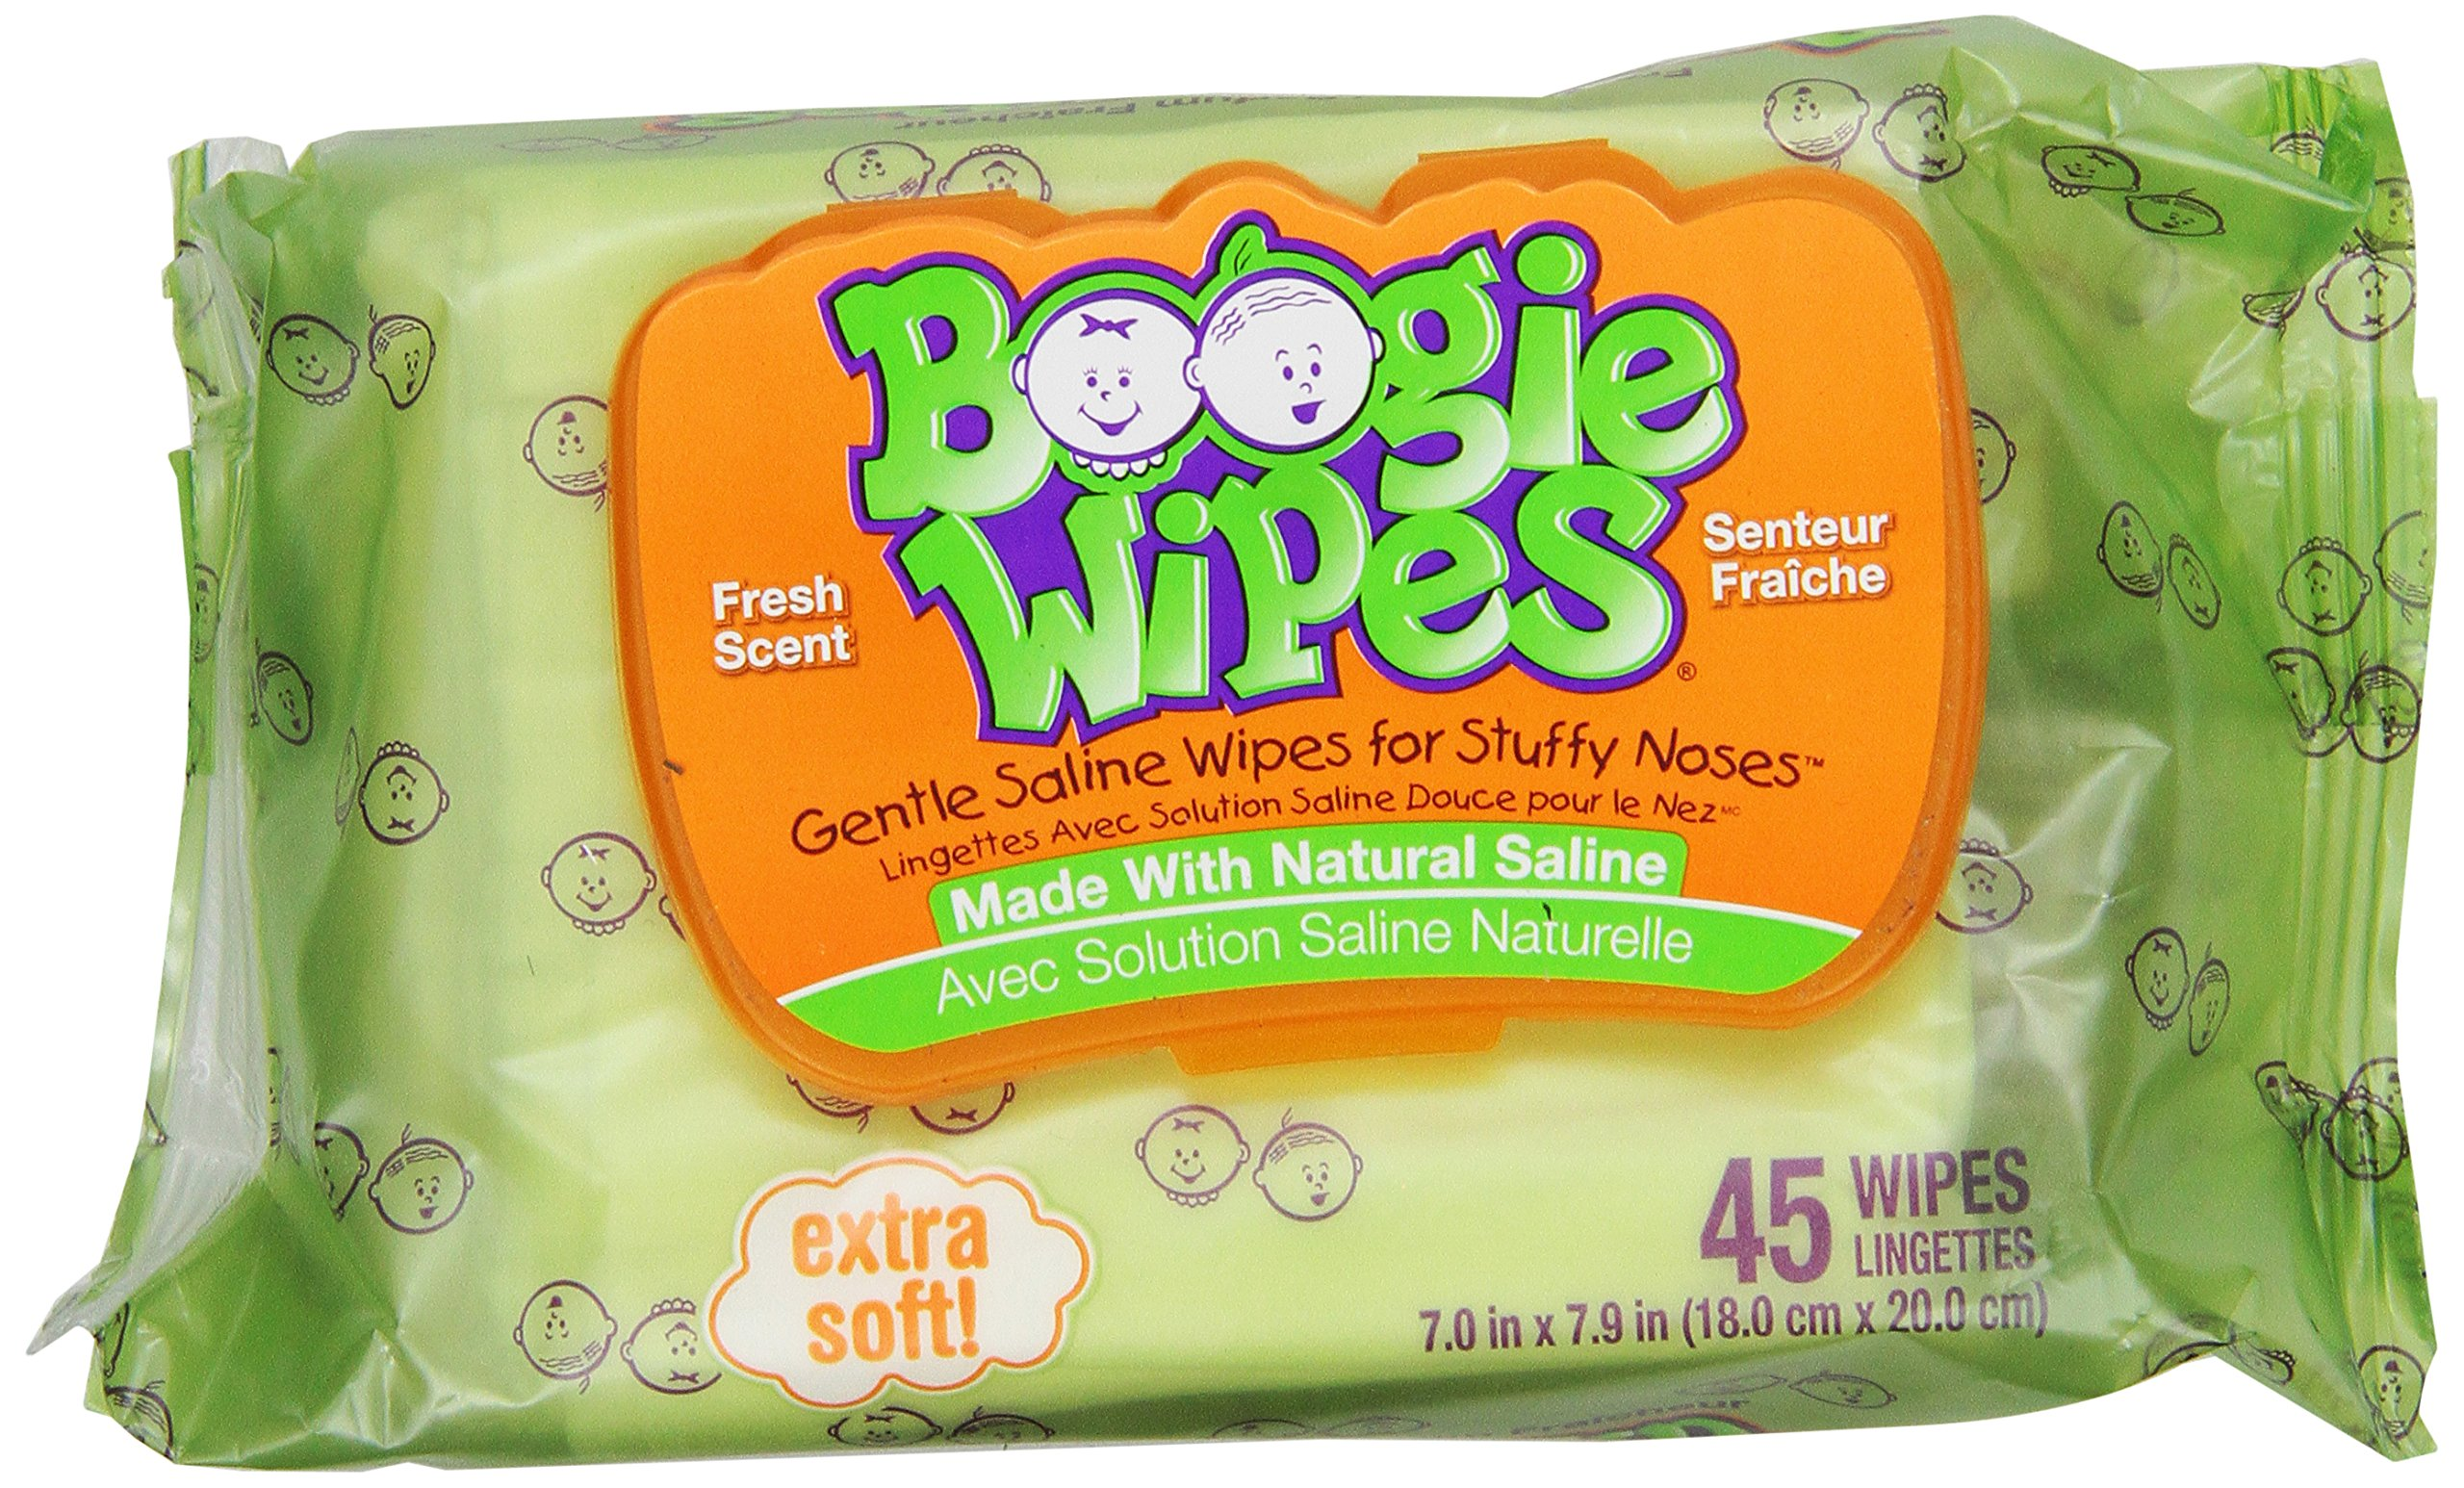 Boogie Wipes Natural Saline Kids and Baby Nose Wipes for Cold and Flu, Fresh Scent, 45 Count